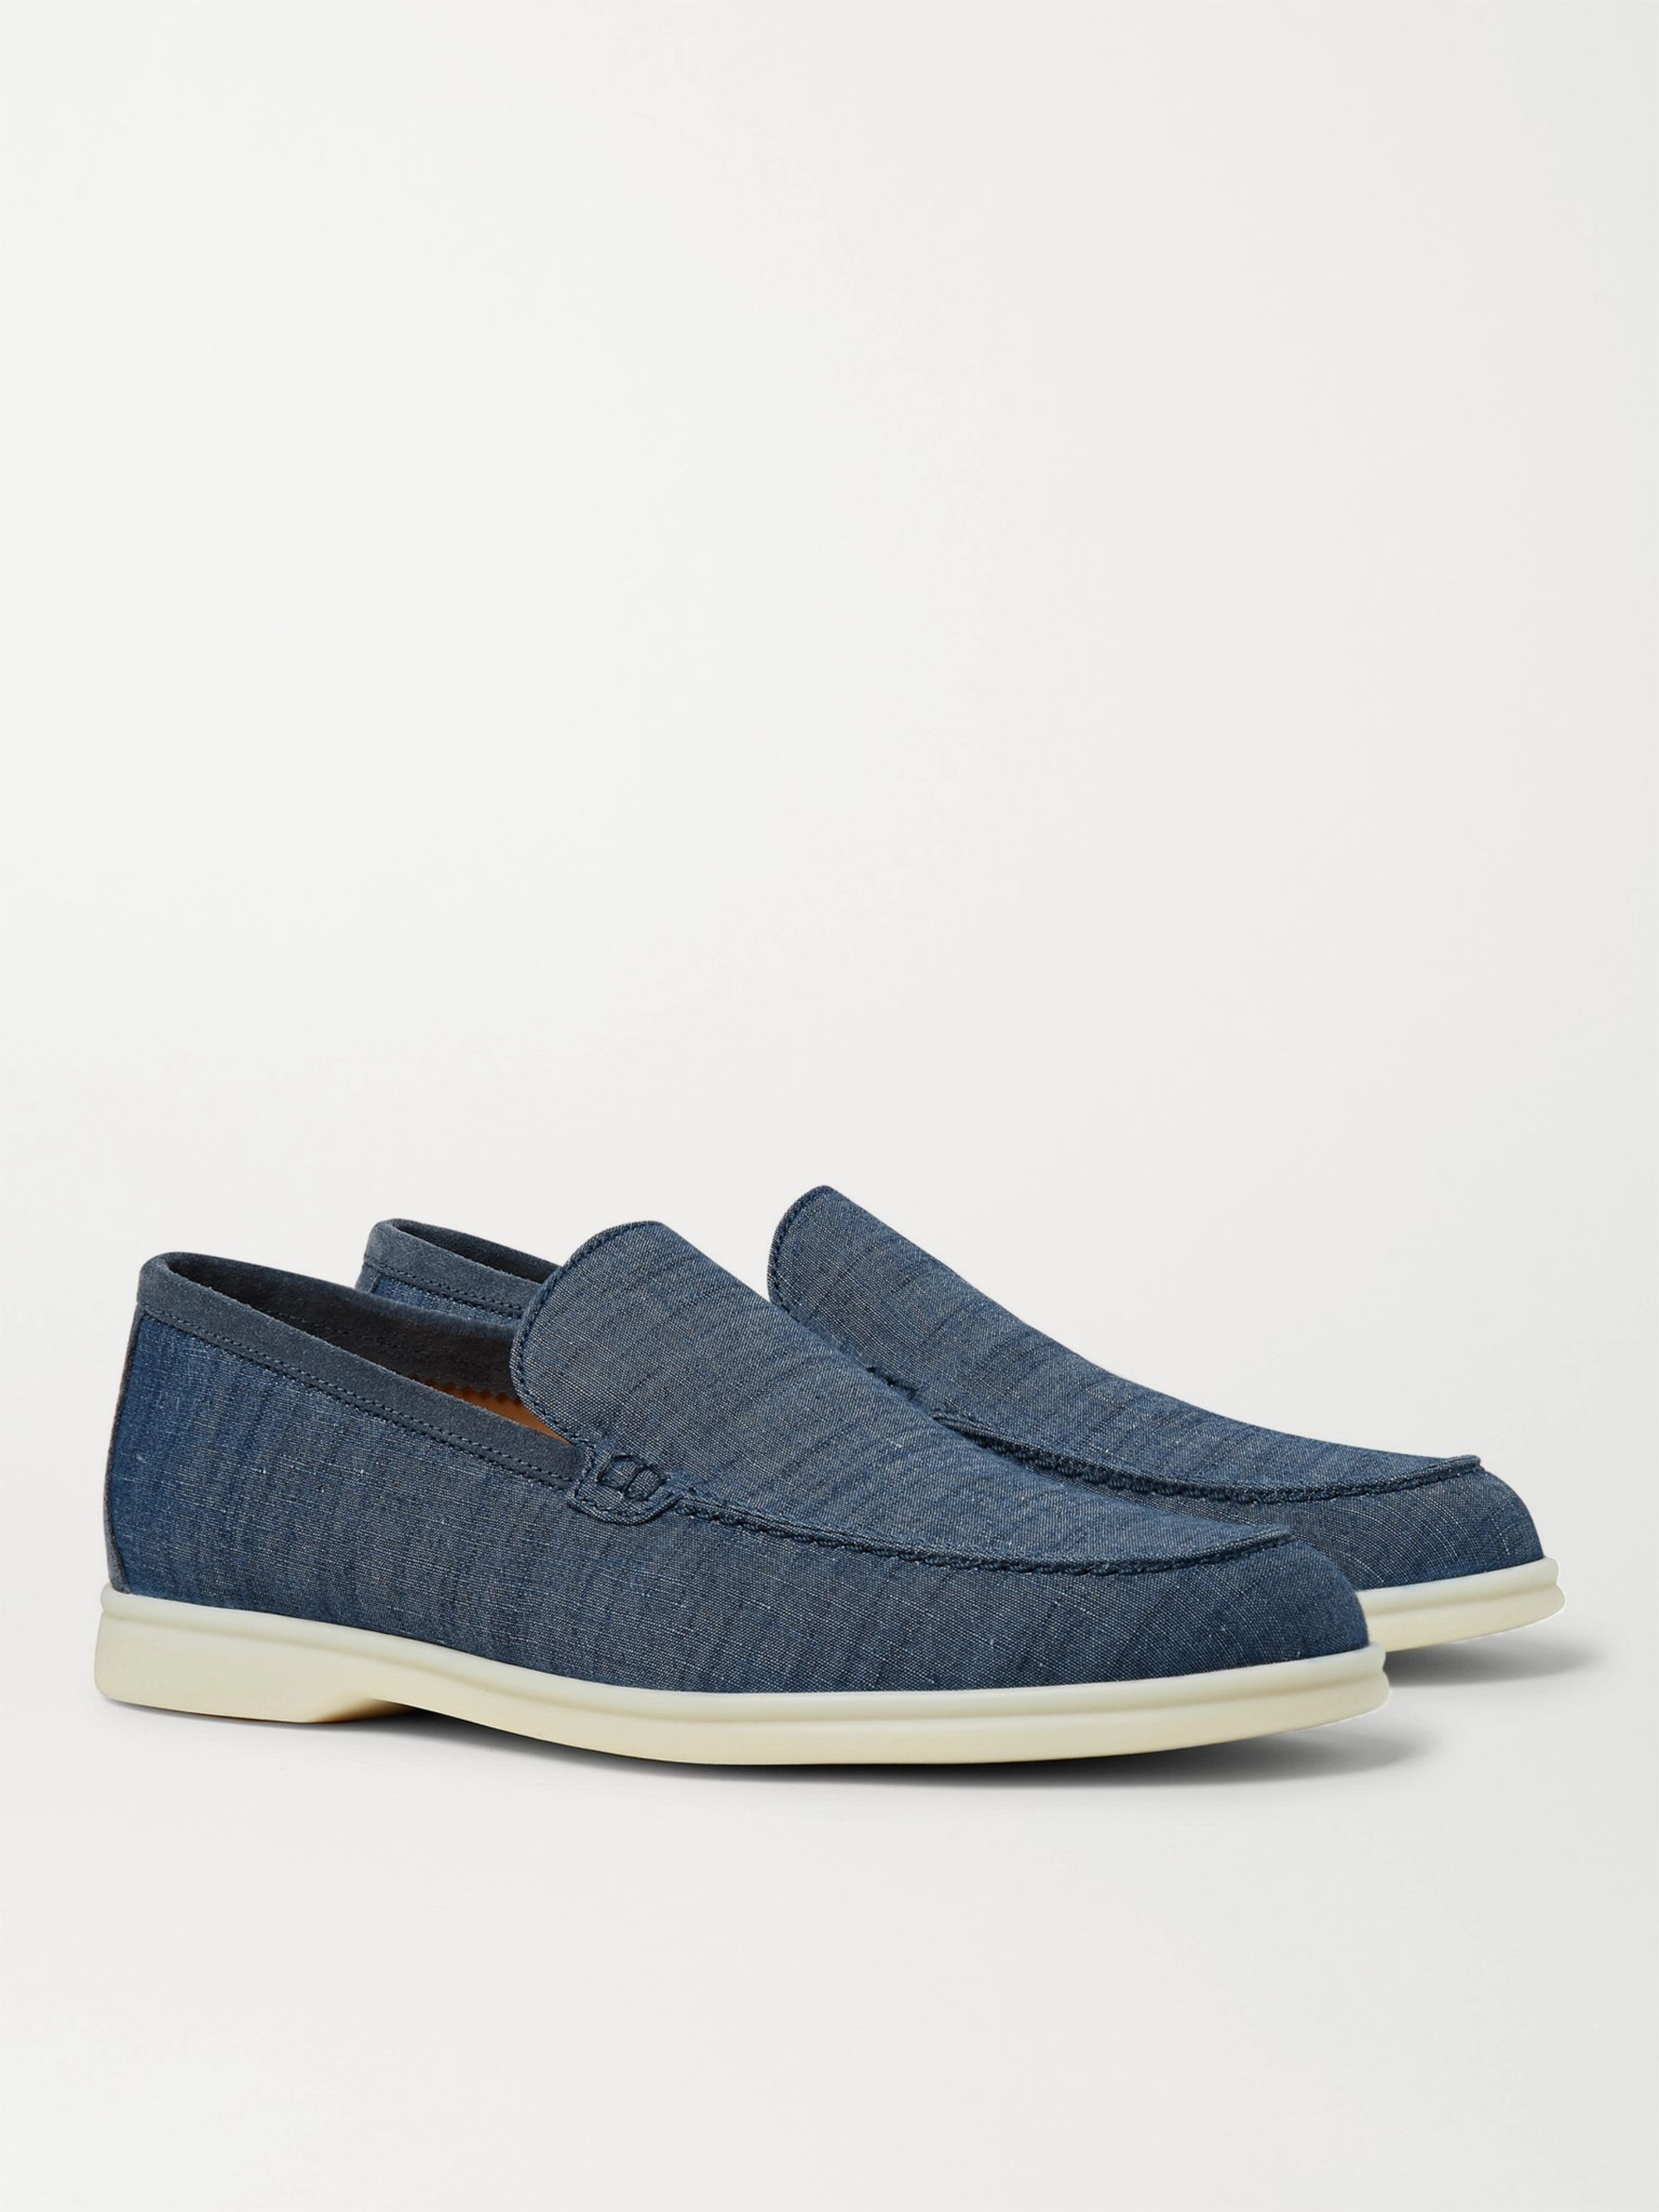 Loro Piana Summer Walk Suede-Trimmed Cotton and Linen-Blend Chambray Loafers